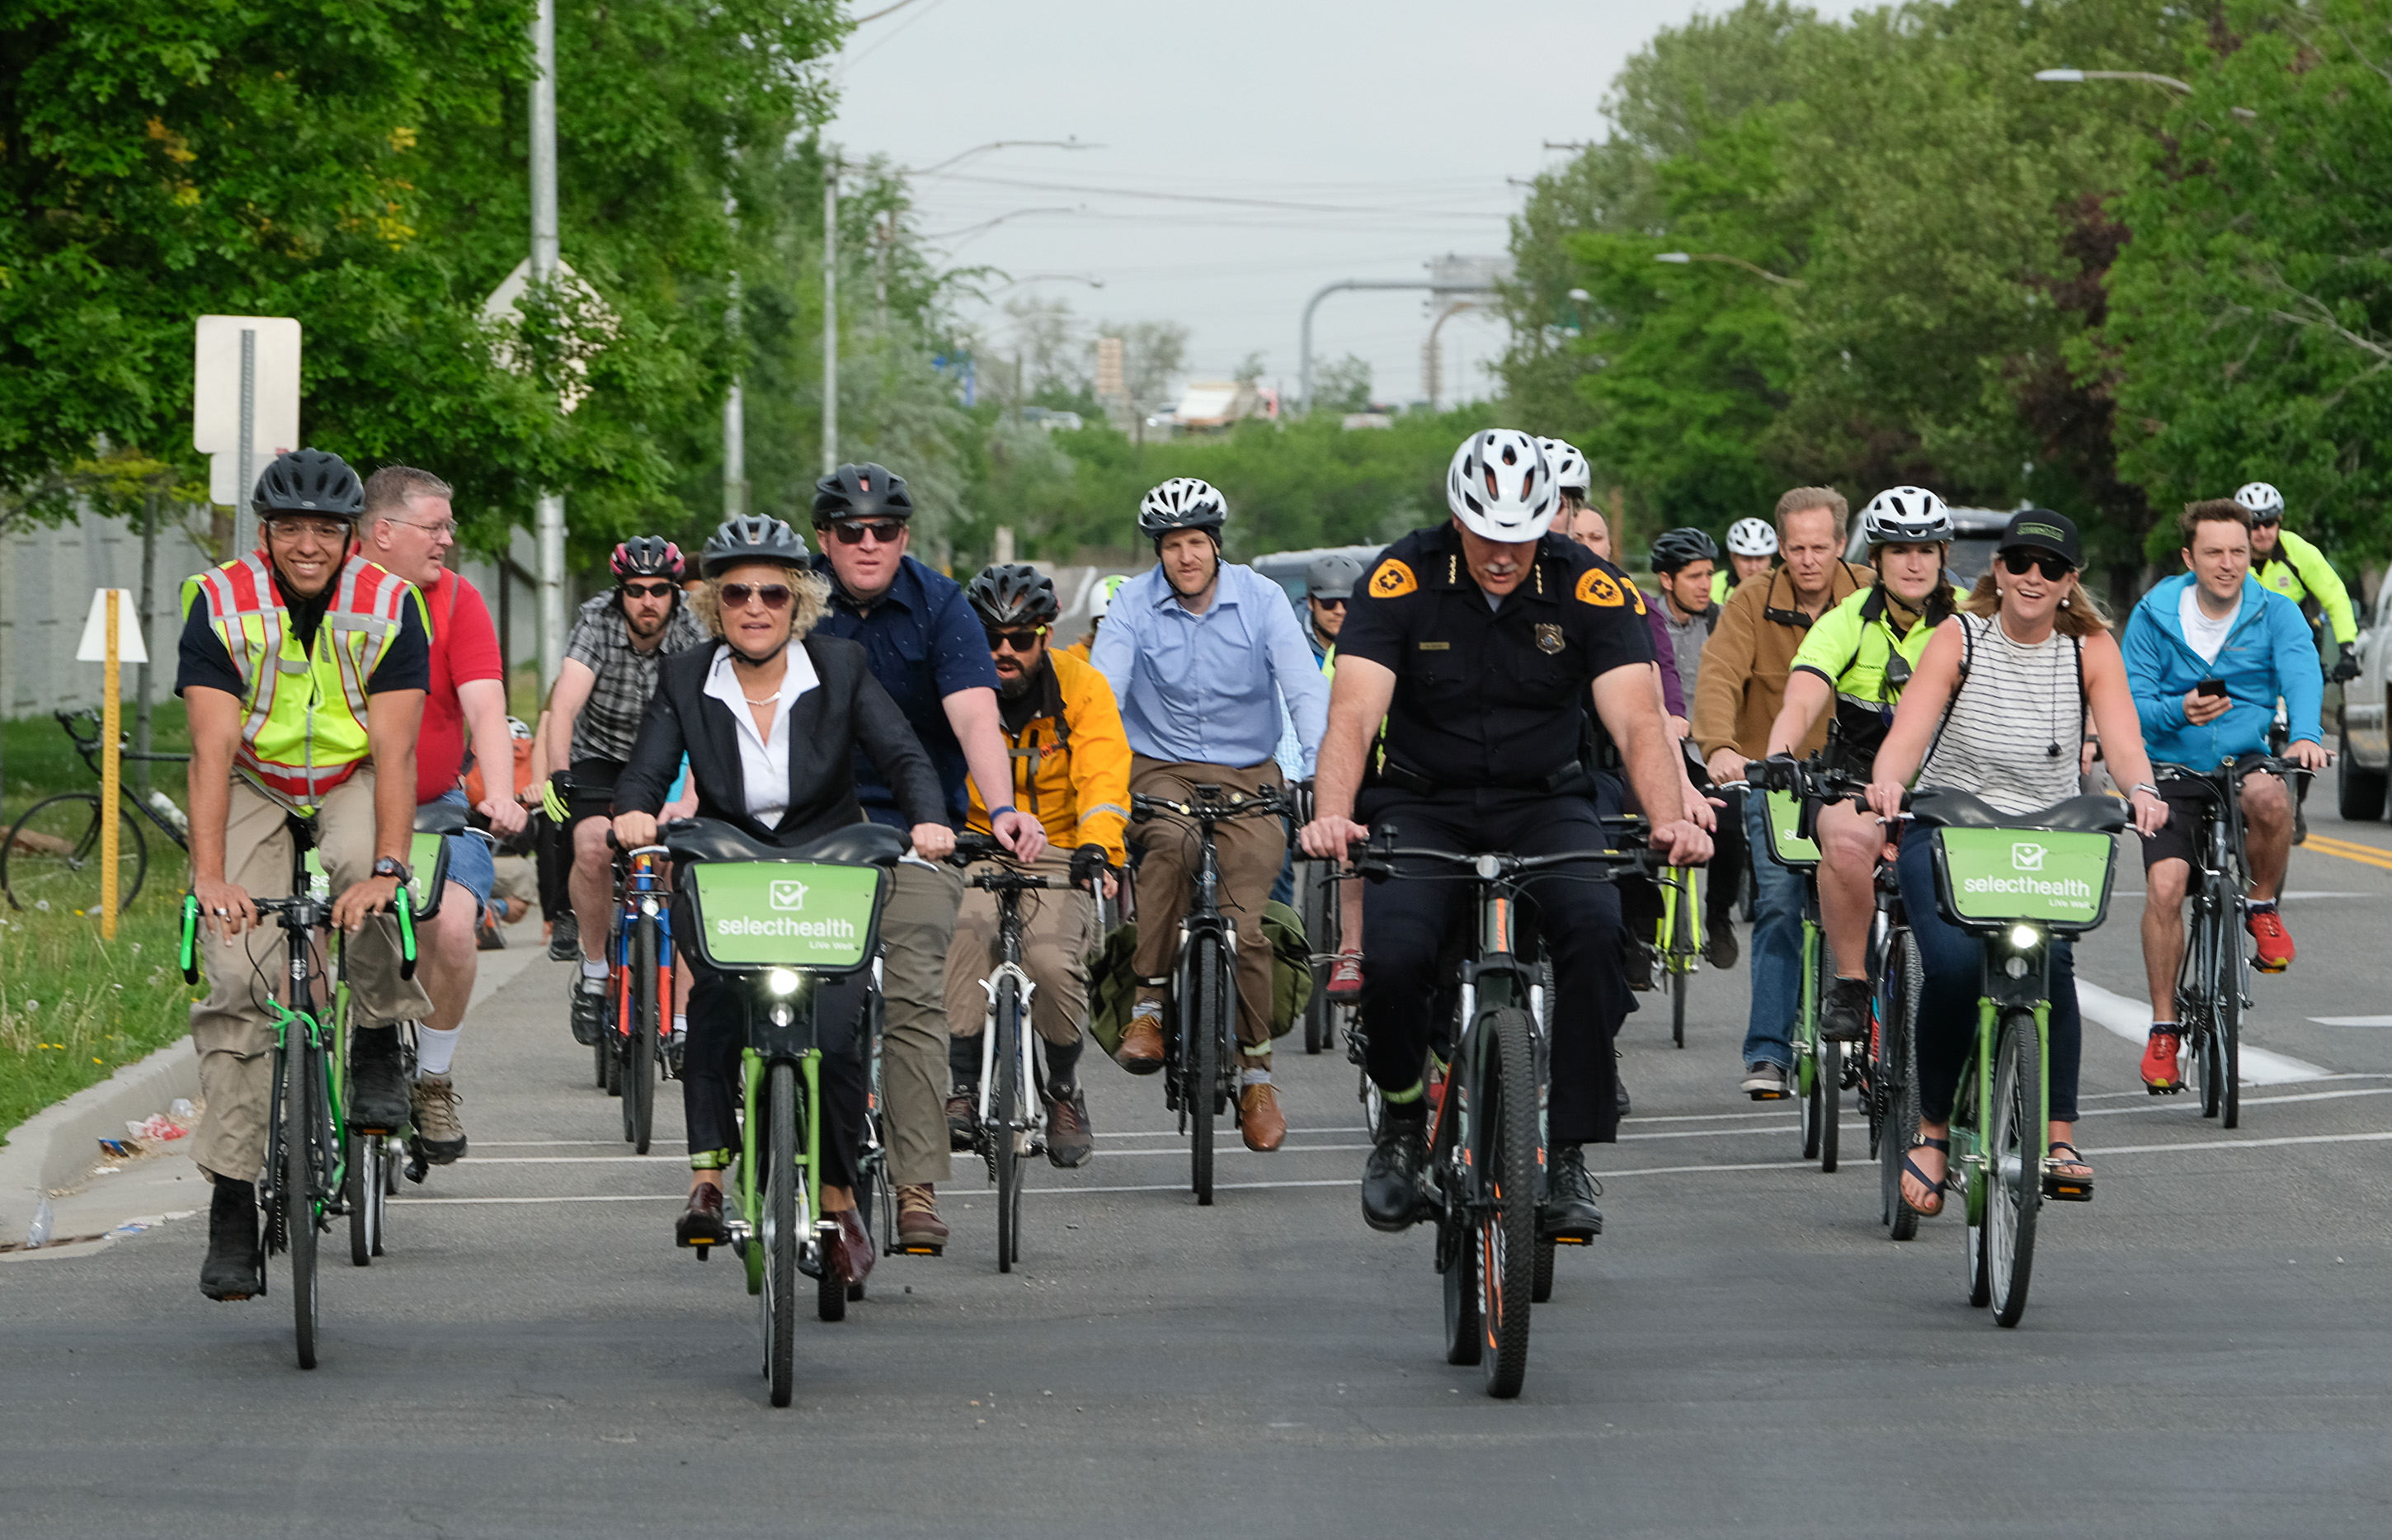 A ride along the Jordan River helps Salt Lake City's mayor promote alternative transportation